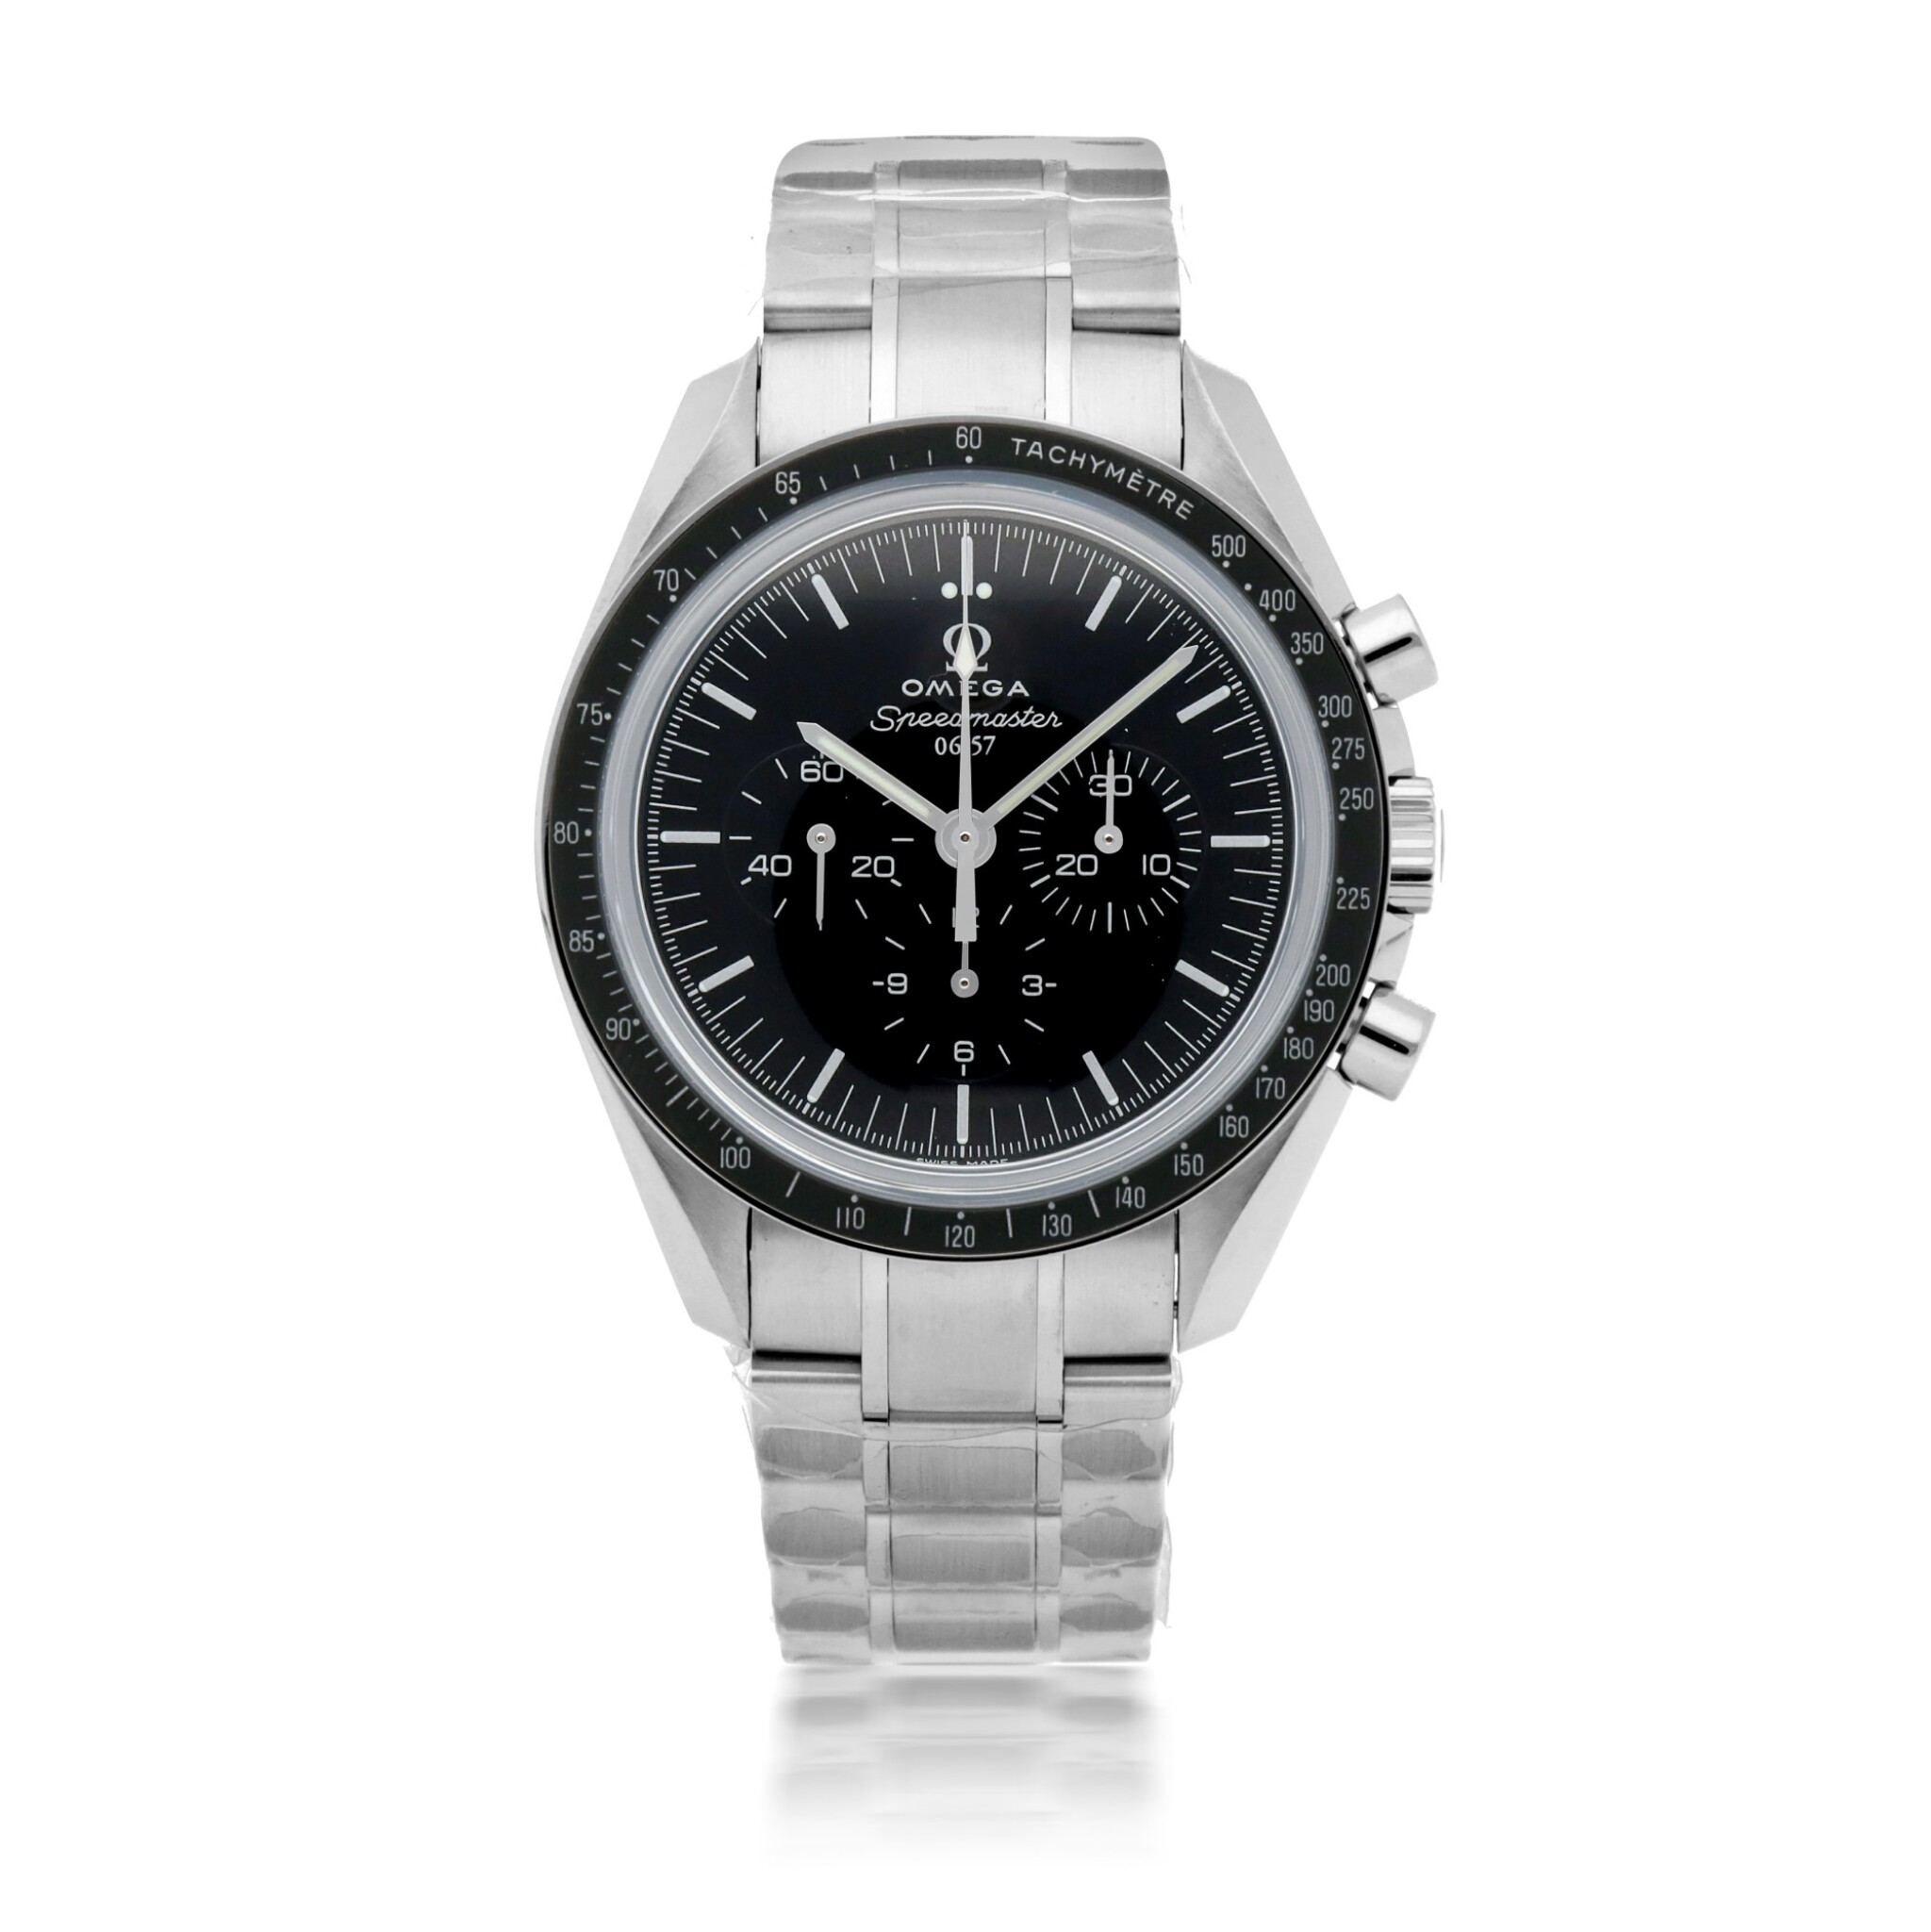 View full screen - View 1 of Lot 372. 50TH ANNIVERSARY SPEEDMASTER, REF 311.63.42.50.01.003 LIMITED EDITION WHITE GOLD CHRONOGRAPH WRISTWATCH WITH BRACELET CIRCA 2007.